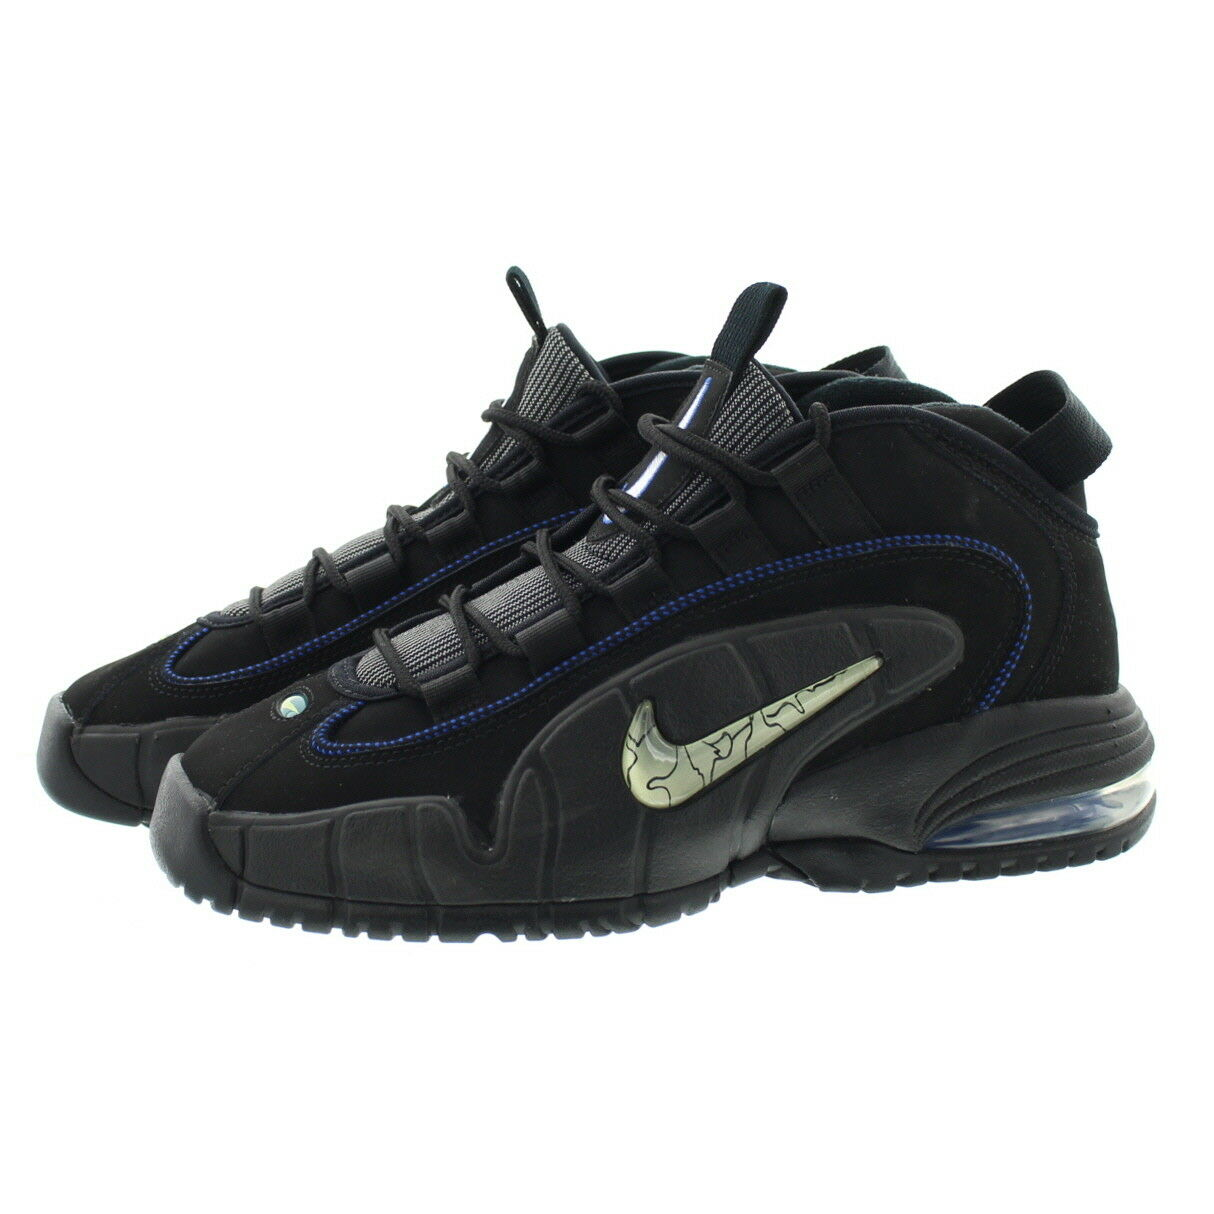 nike air max performance 1 685153-001 bei penny performance max basketball - schuhe turnschuhe b4861a